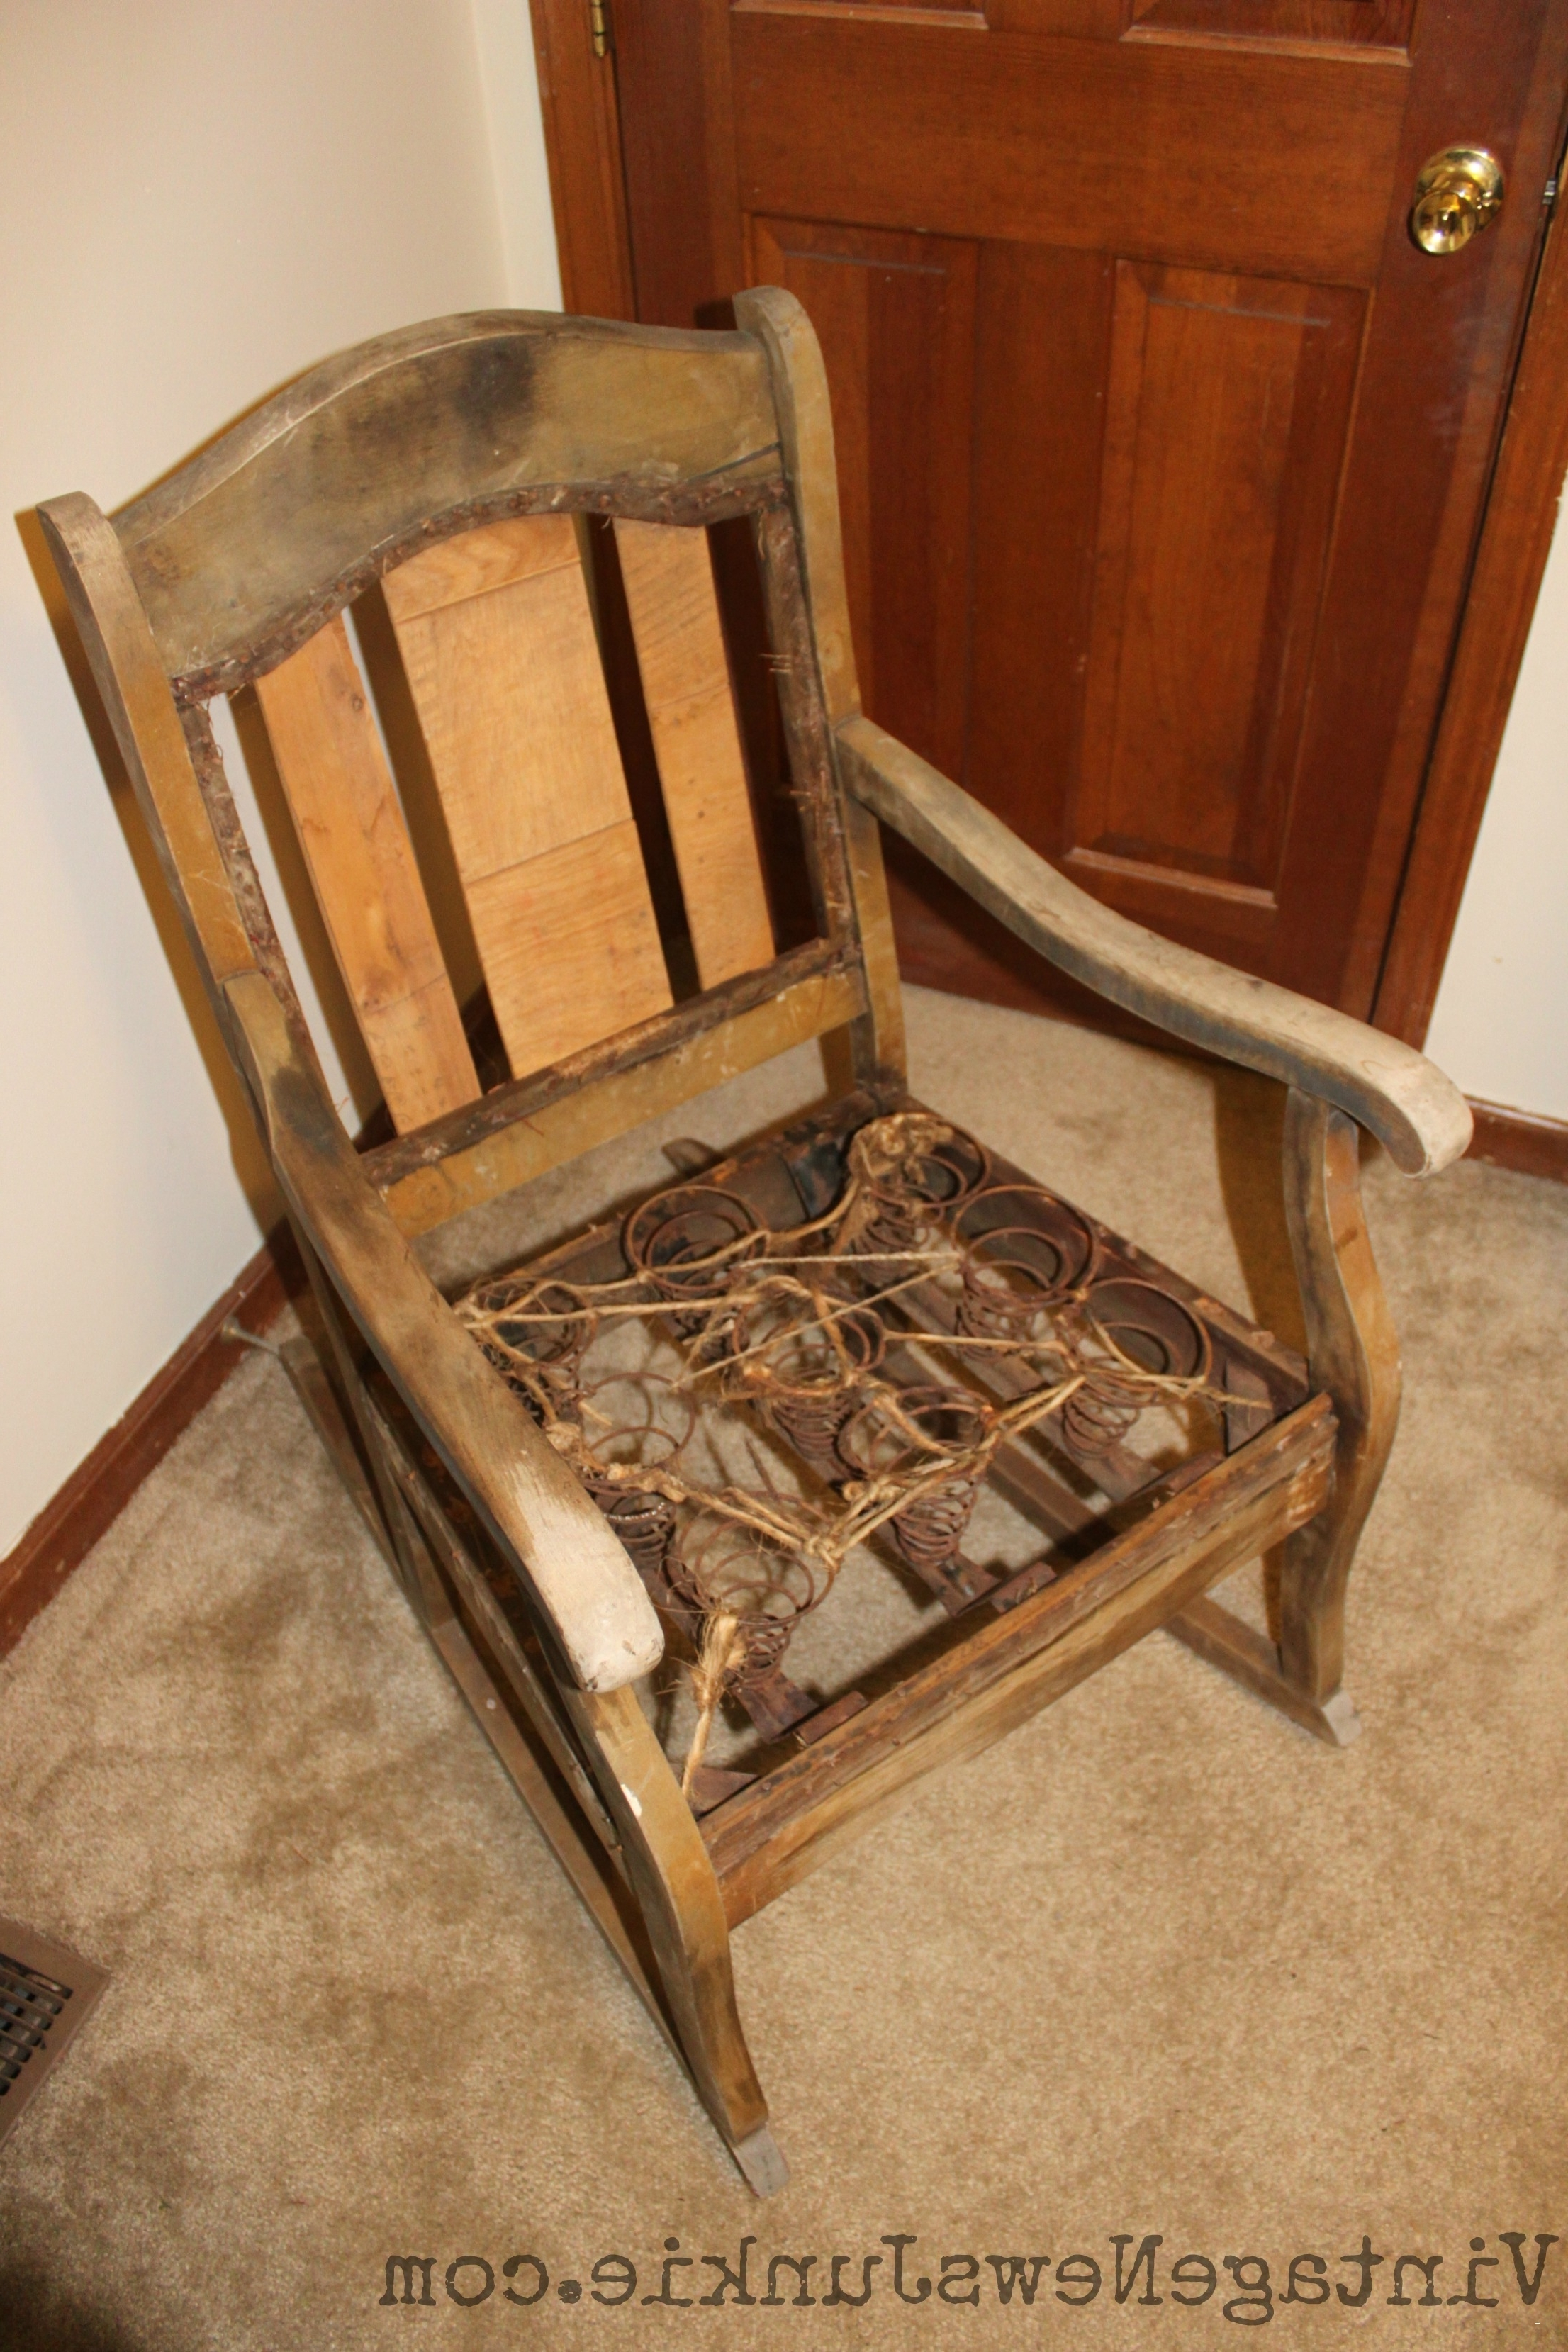 Rocking Chairs With Springs Intended For Widely Used Upholstered Rocking Chairs New Reupholster Chair Seat With Springs (View 14 of 15)